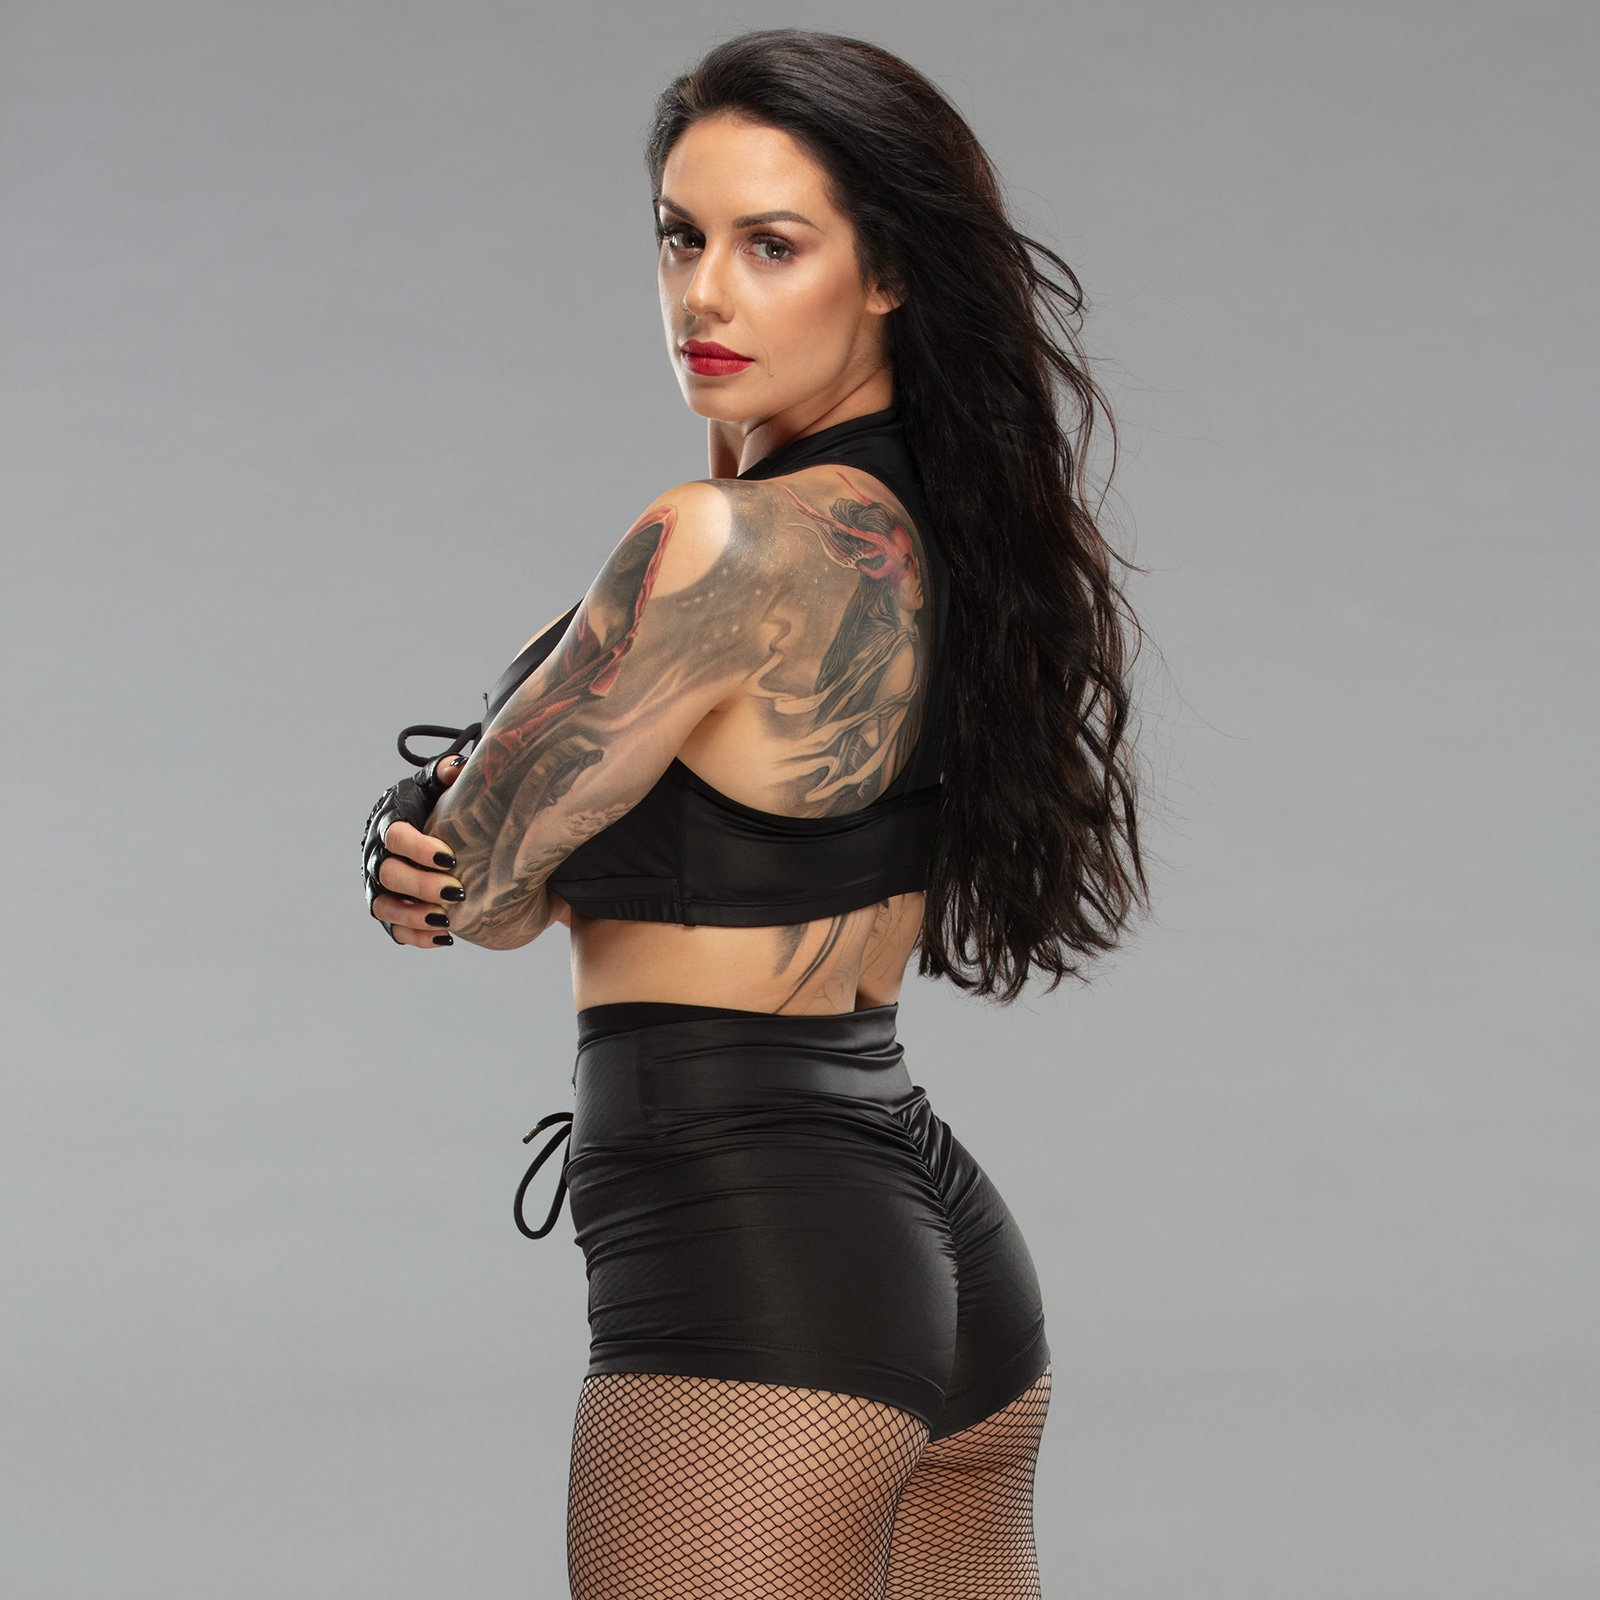 Celeste Bonin (WWE Kaitlyn) nudes (78 photos), Topless, Bikini, Boobs, braless 2020